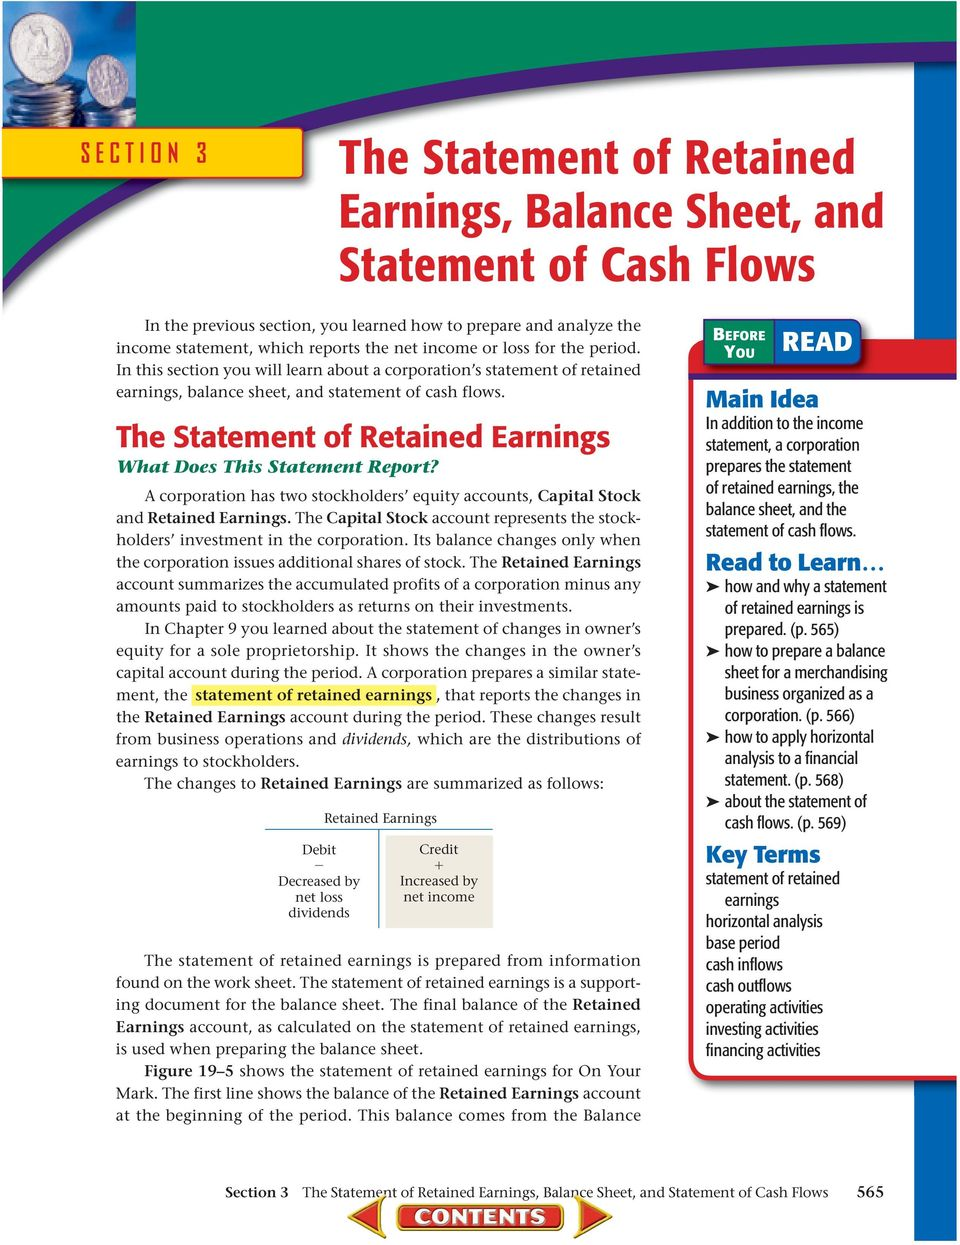 The Statement of Retained Earnings What Does This Statement Report? A corporation has two stockholders equity accounts, Capital Stock and Retained Earnings.